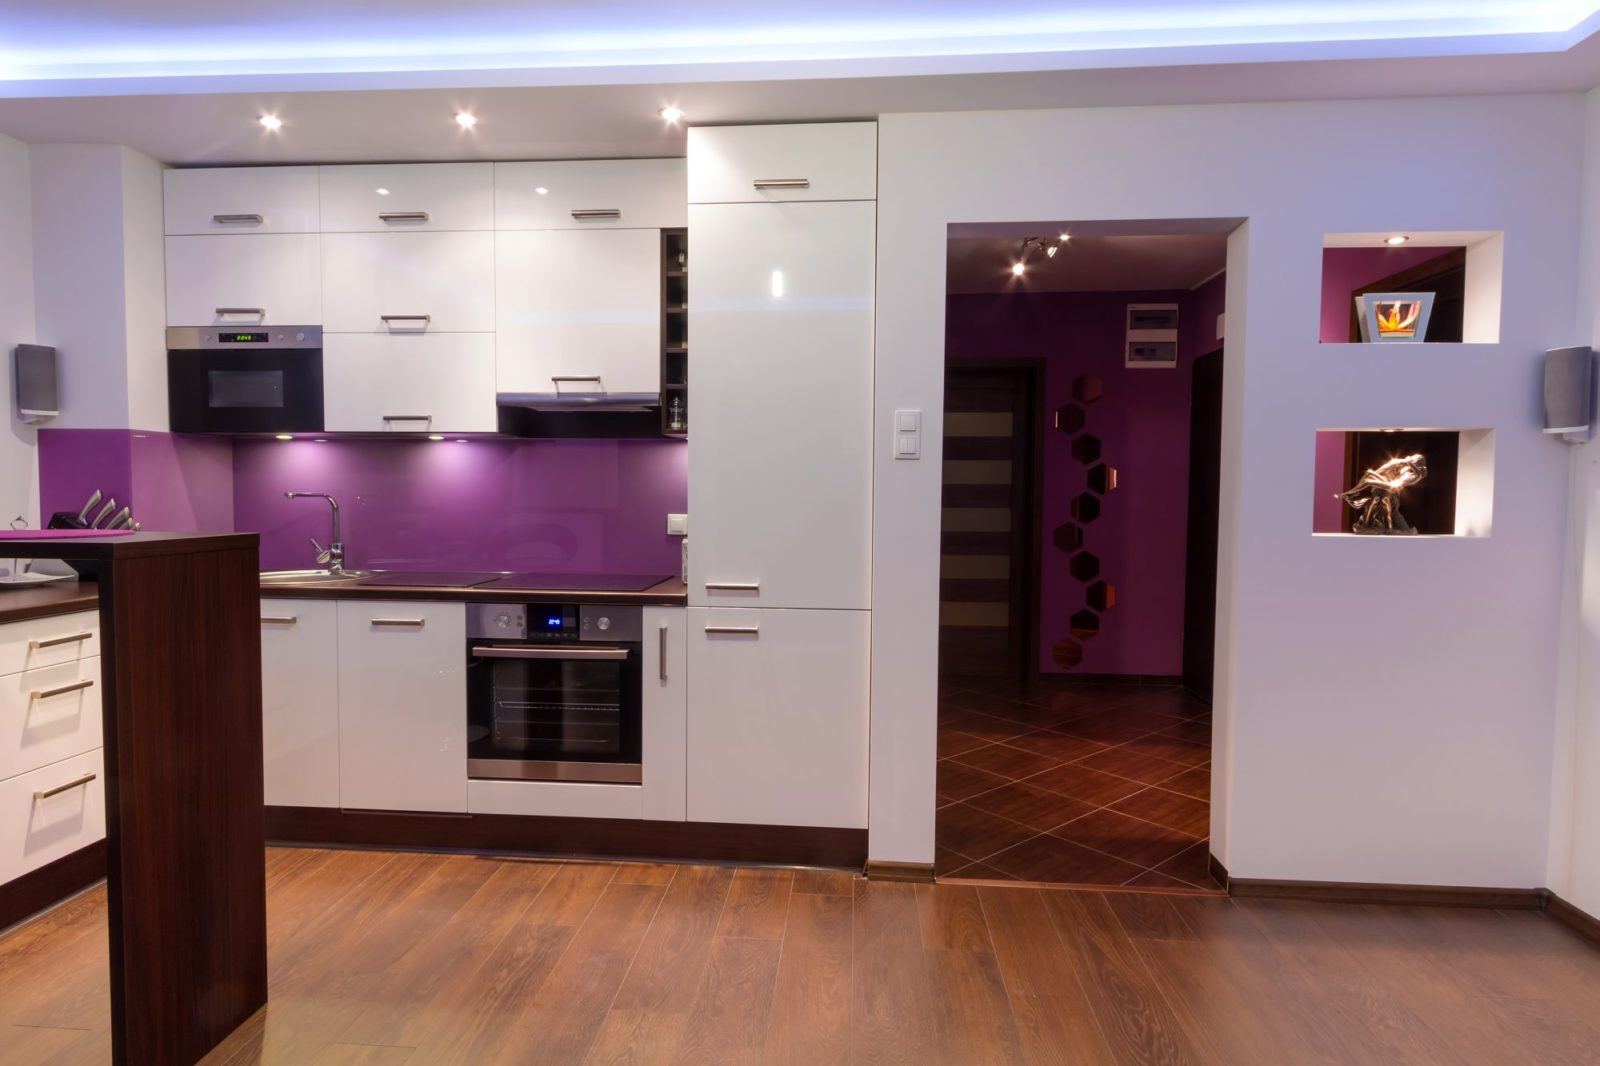 Heather & White kitchen with LED backlight